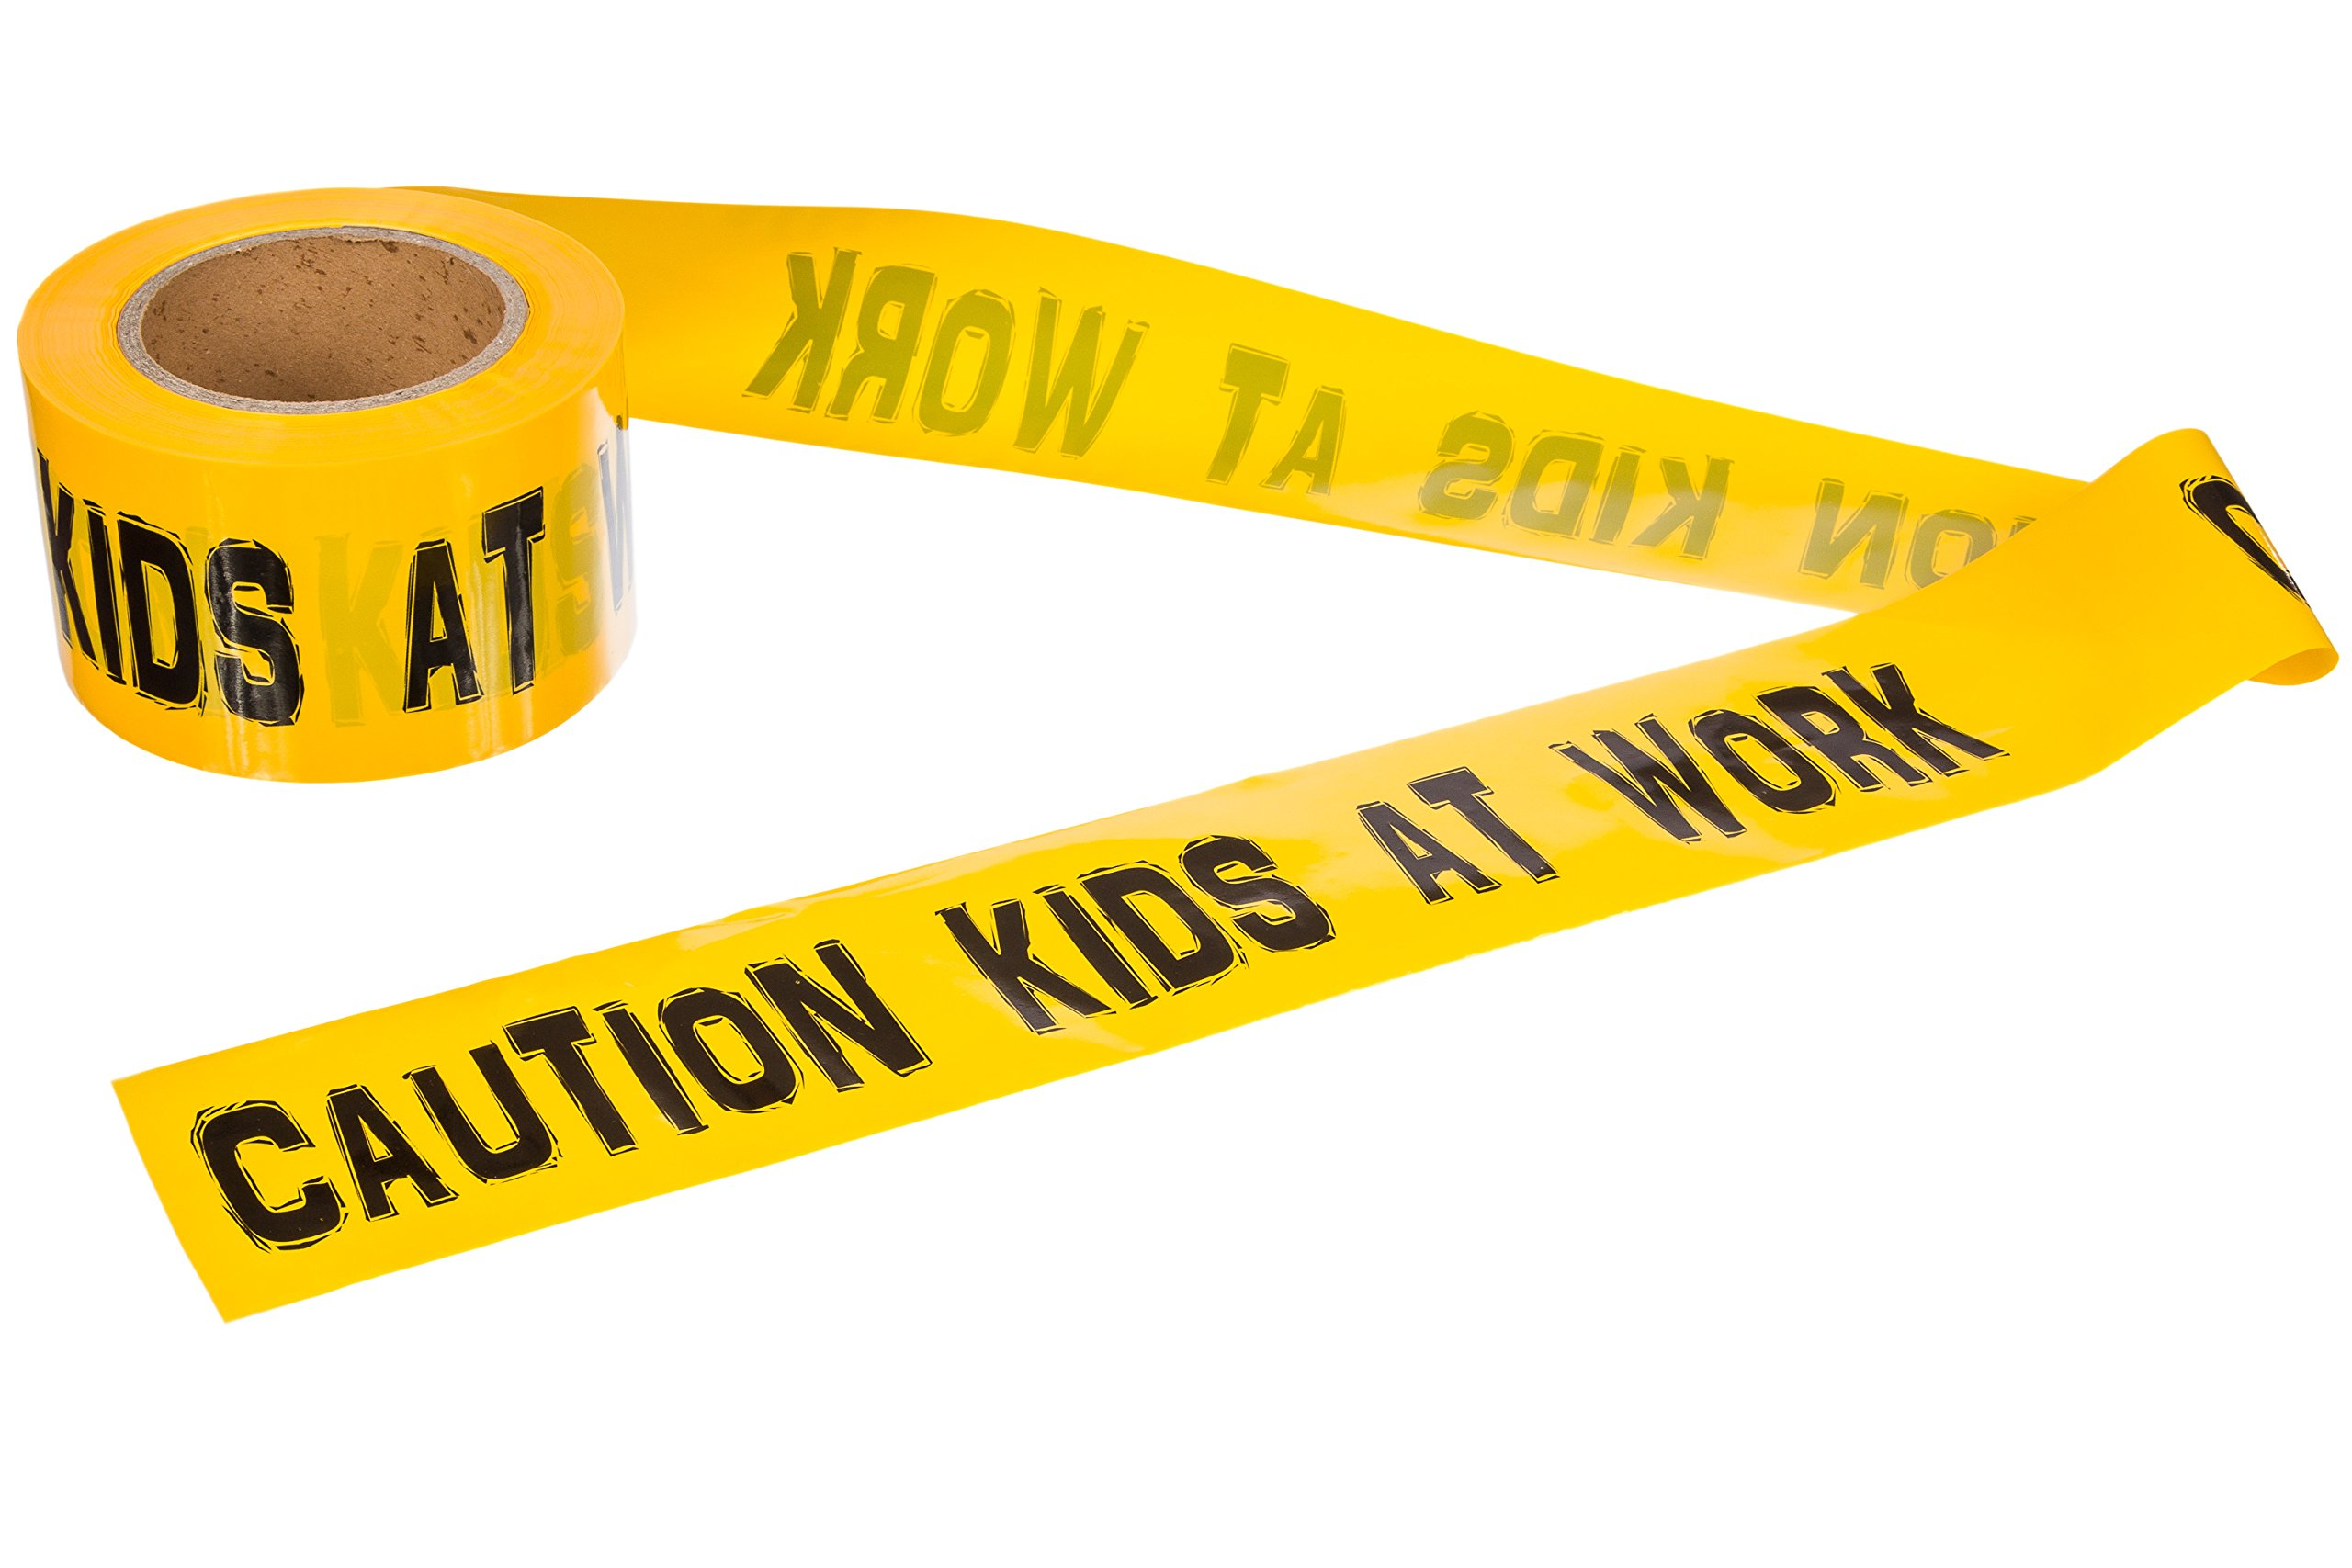 Caution Kids at Work! - 300' Roll of Caution Tape - Black and Yellow - Barricade Tape for Kids or Adults - by TorxGear Kids